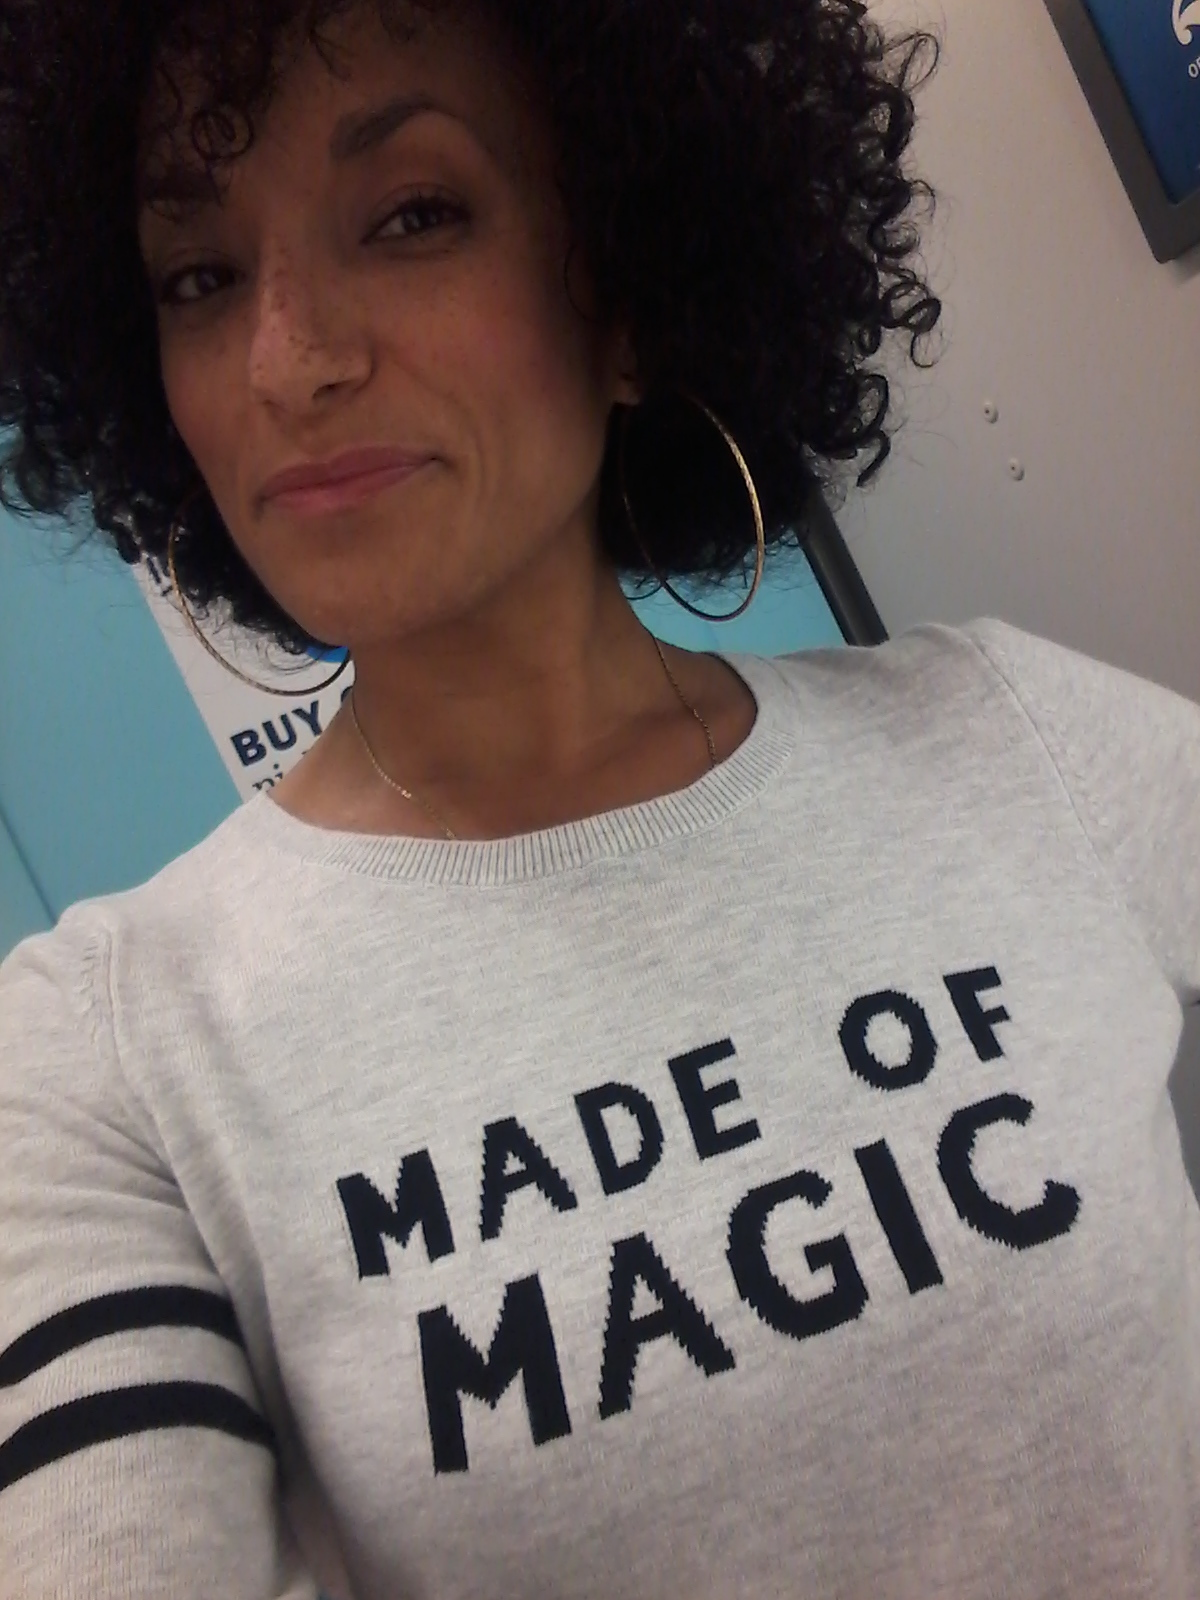 We are all made of magic.